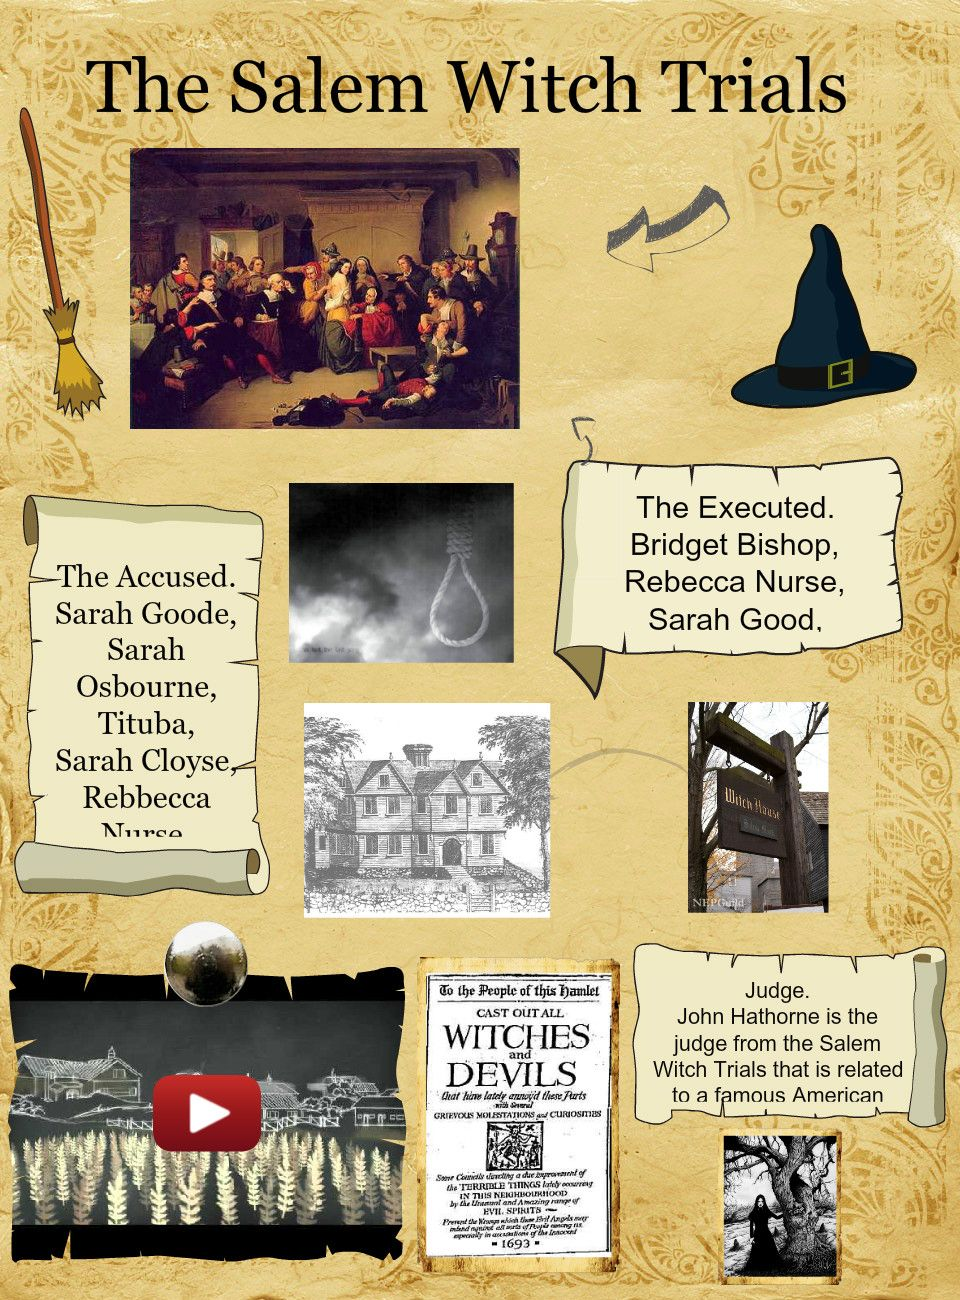 "mccarthyism vs salem witch trials thesis The salem witch trials and mccarthyism: parallels in public hysteria task overview: playwright arthur miller had more on his mind than the ""witches"" of salem, massachusetts when he penned what became one of his most-produced plays, the crucible written in 1953 during the height of what has been called the."